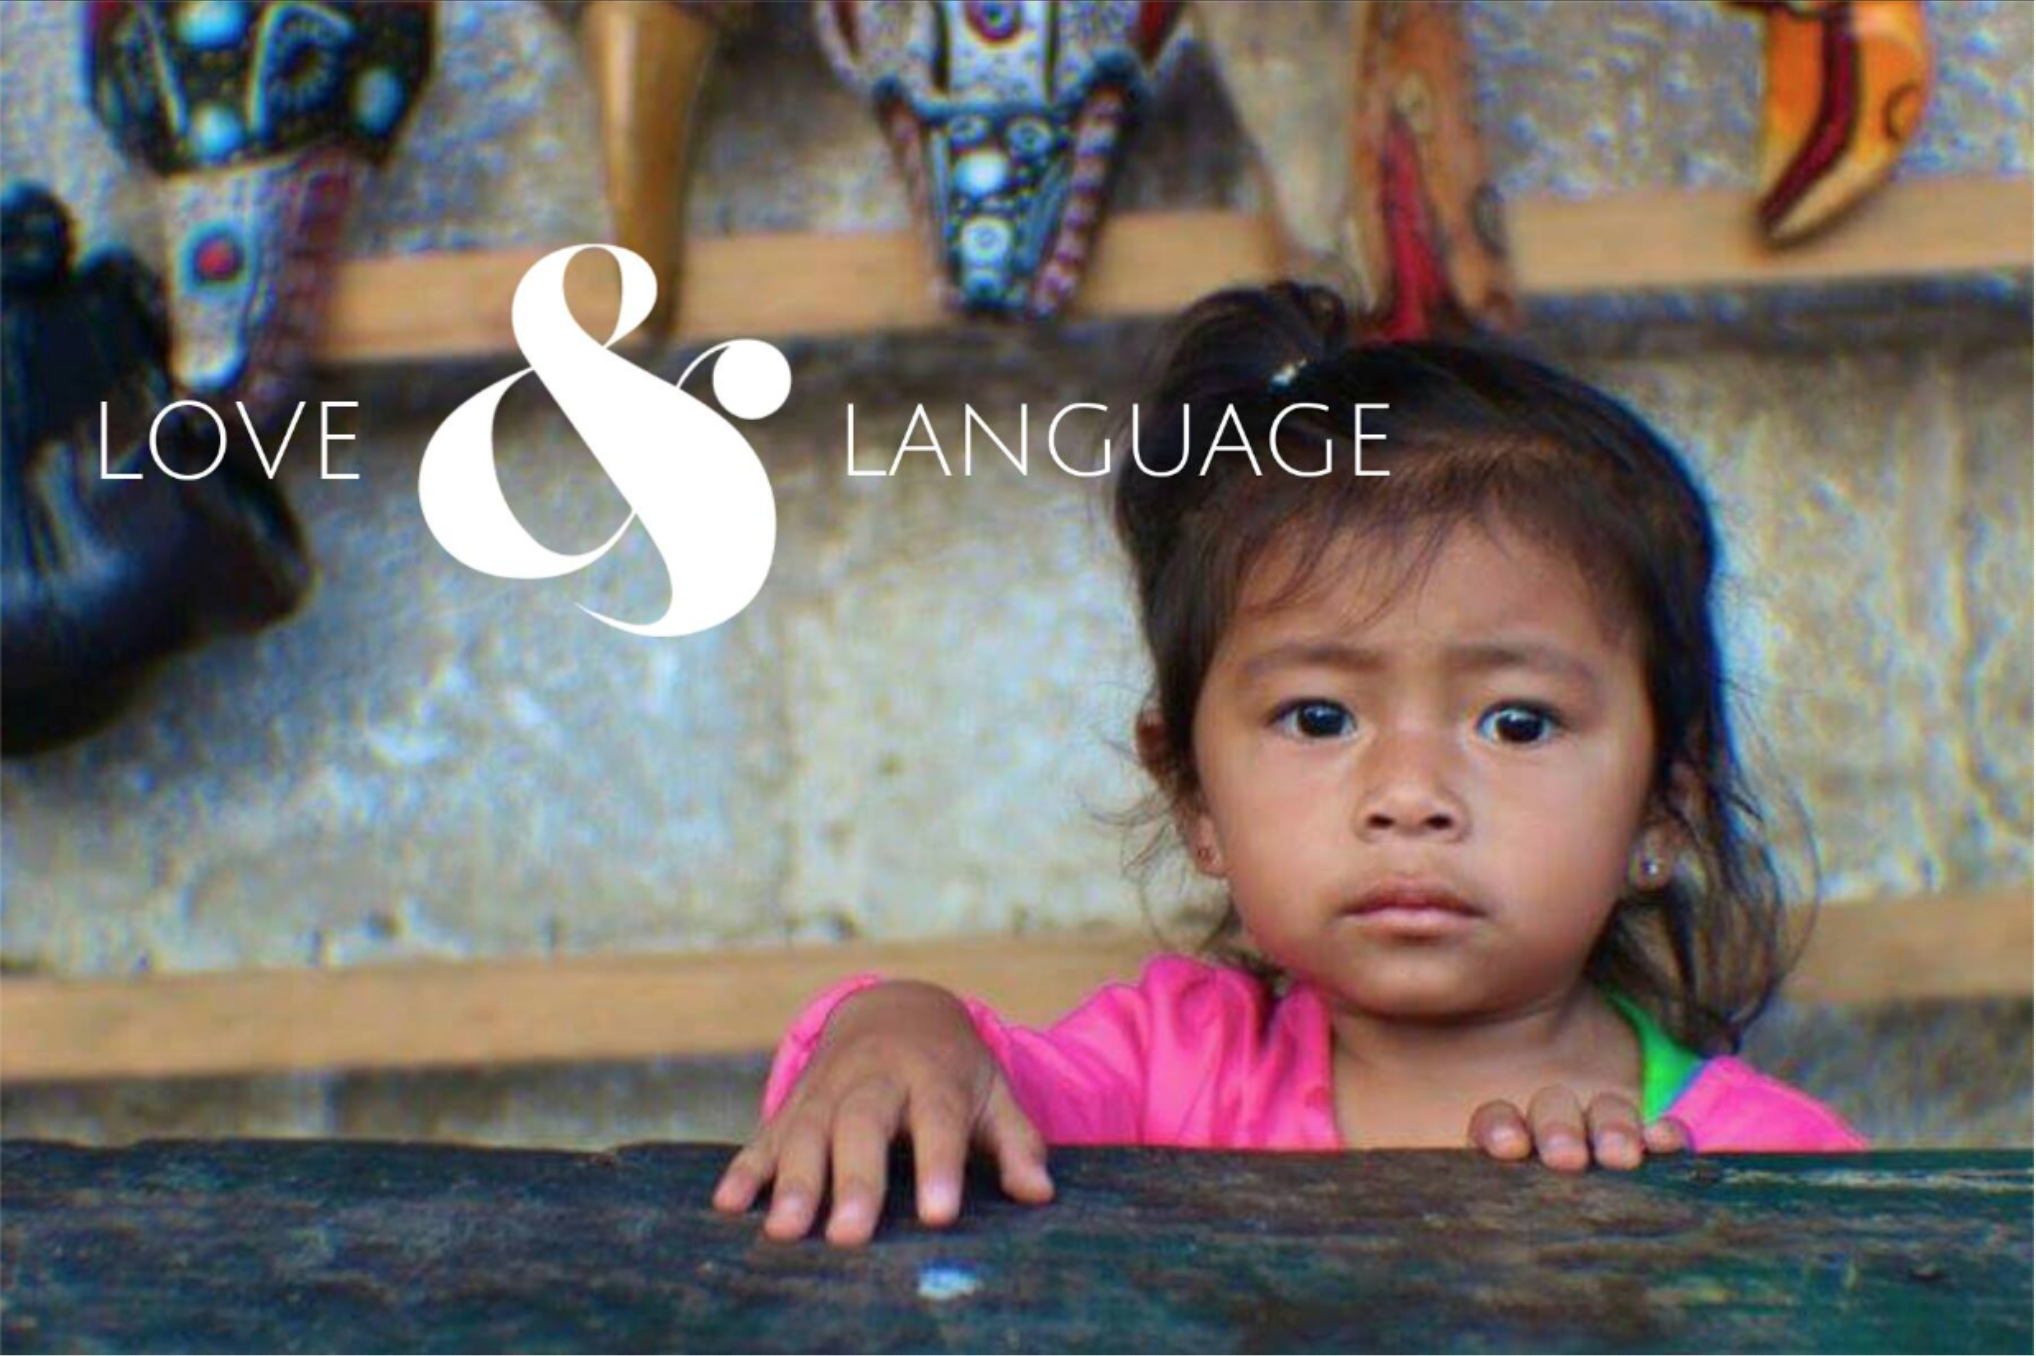 Quepos, Costa Rica.No words. It's a scary and humbling experience to be a minority in a foreign country, especially when it comes to language barriers. While visiting Costa Rica in the Fall of 2015 and traveling to a rural Costa Rican school to play and interact with the children, I've never been so frustrated with not knowing another language. Even with basic to intermediate Spanish speaking skills, it was heartbreaking to not know how to communicate with the children. Lesson learned: Do not take something as beautiful as anguage for granted nor expect that others should speak or look the way you do.